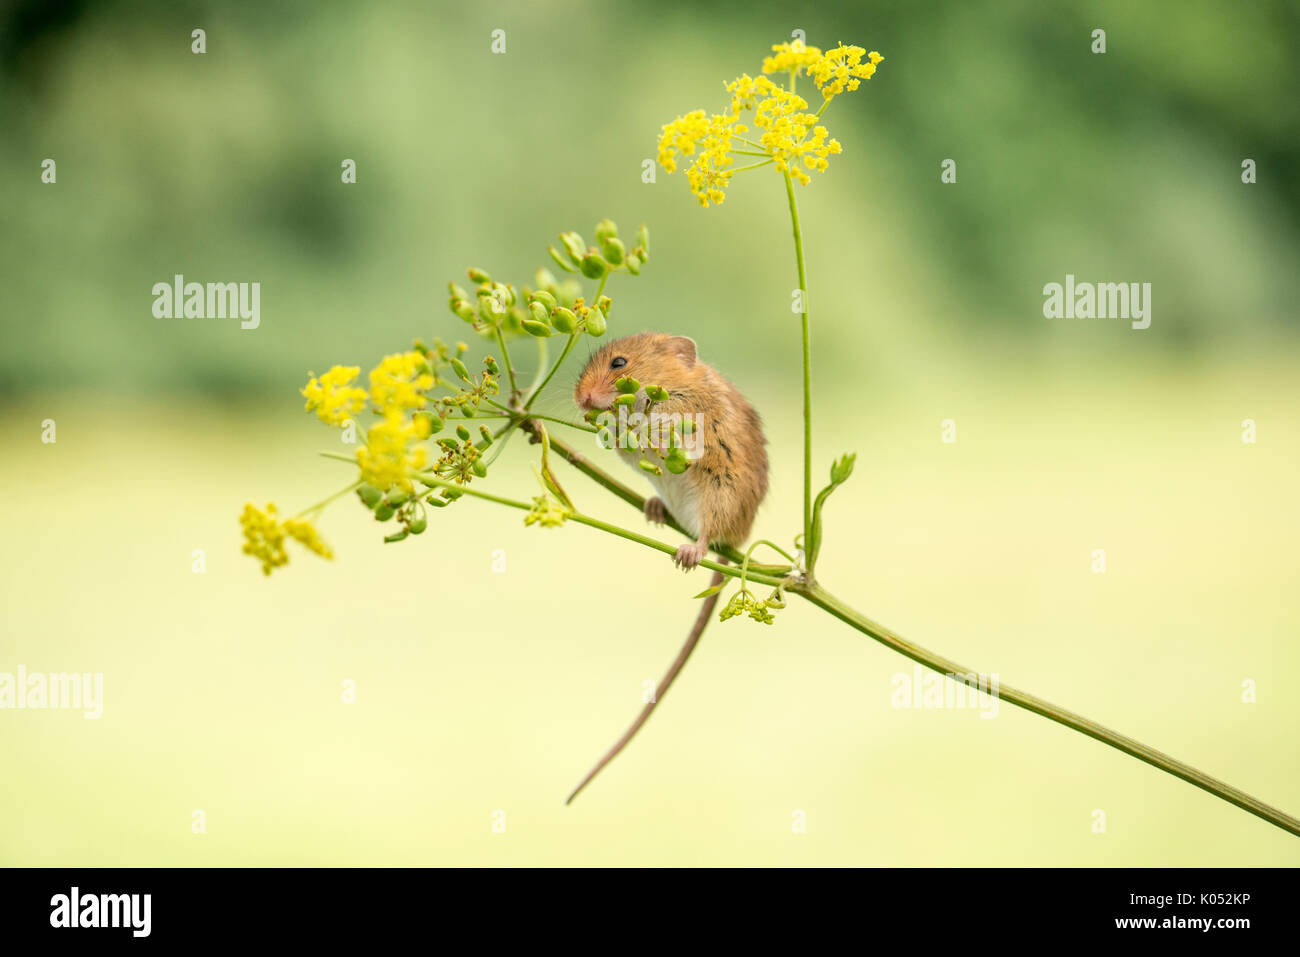 Harvest mouse (Micromys minutus) eating seeds and flowers of wild parsnip (Pastinaca sativa) - Stock Image